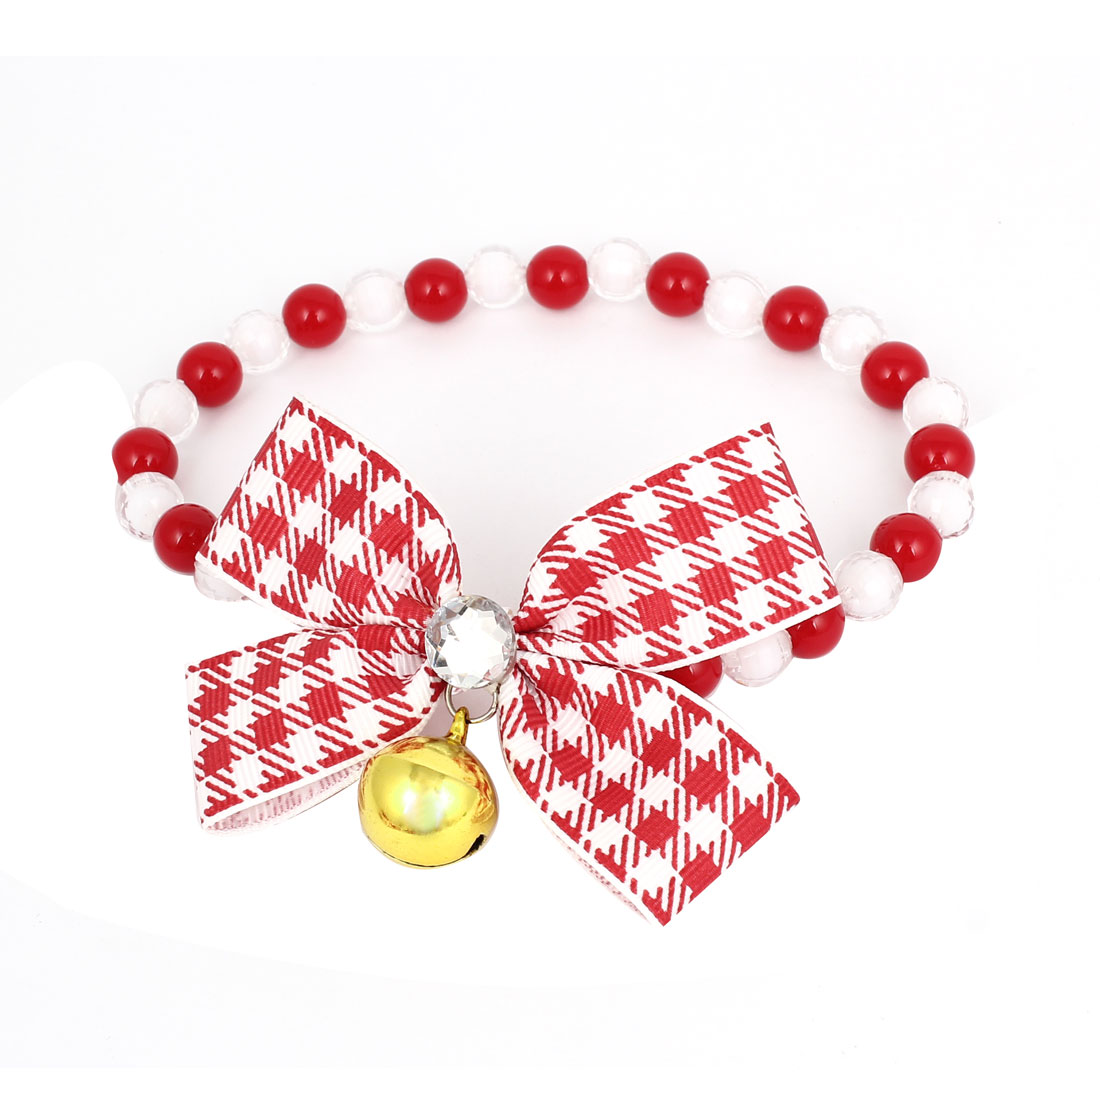 Metal Bell Pendant Bowtie Accent Pet Dog Plastic Beads Collar Necklace Red White M